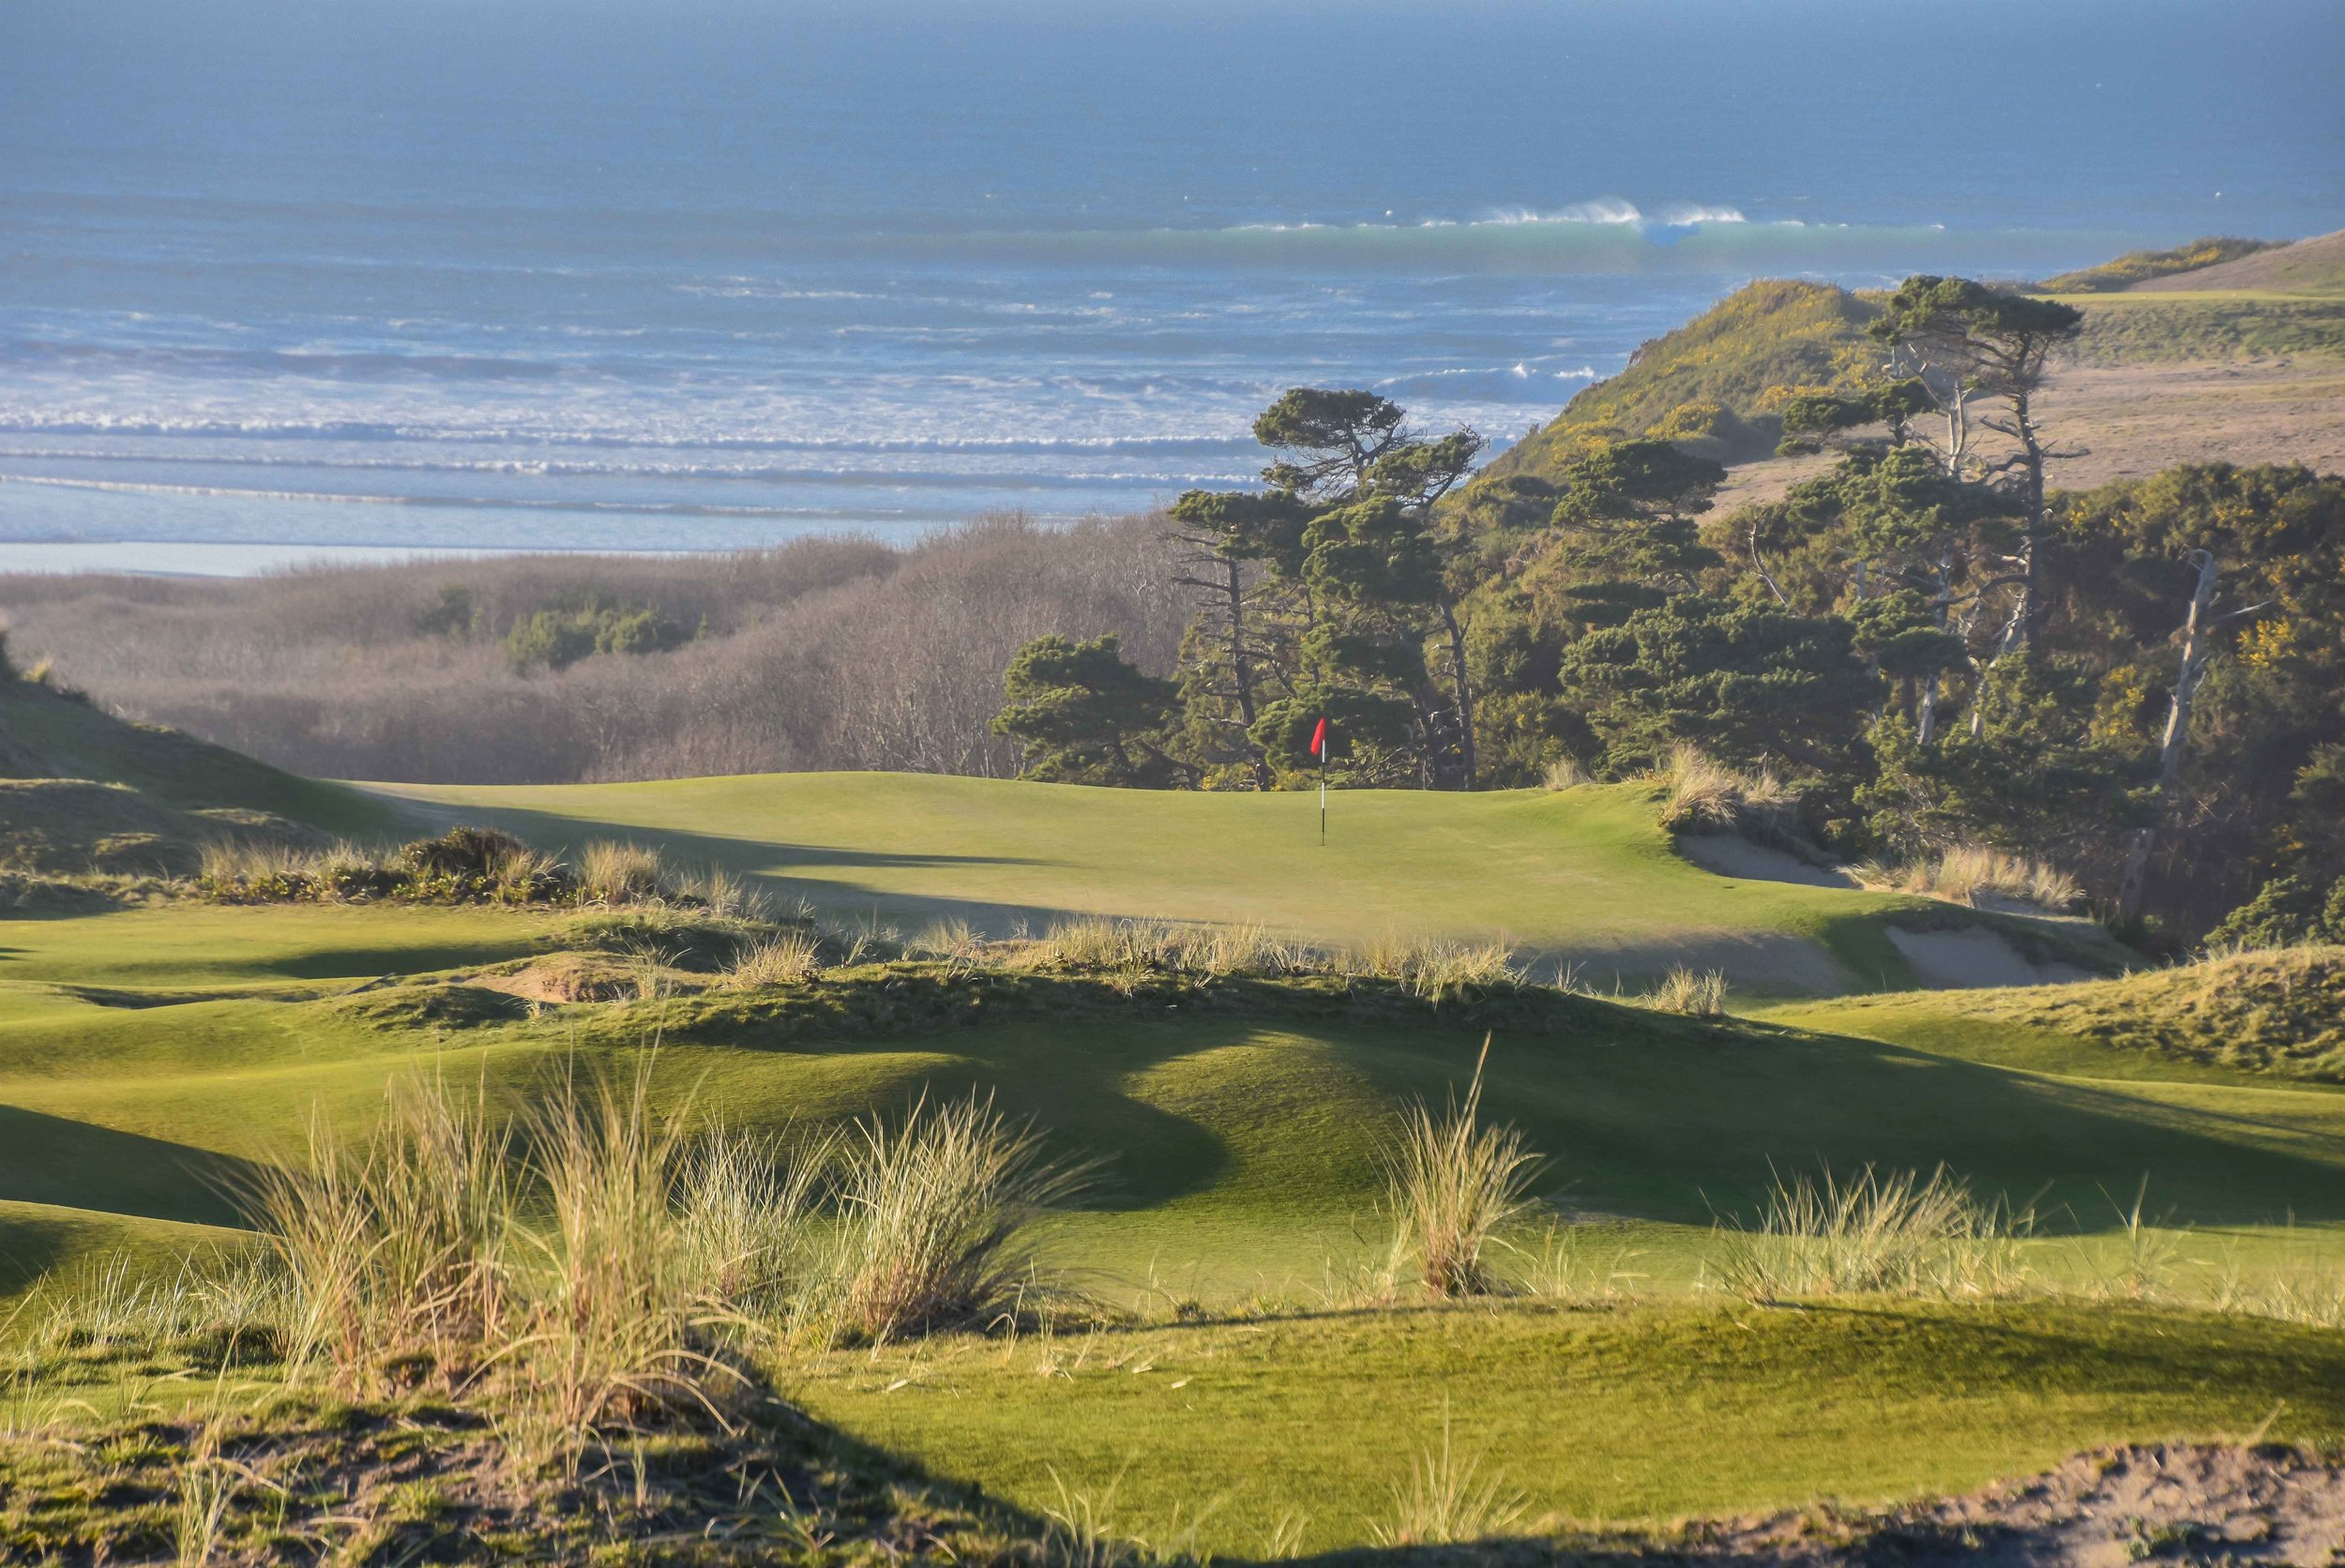 The 9th hole at Bandon Preserve